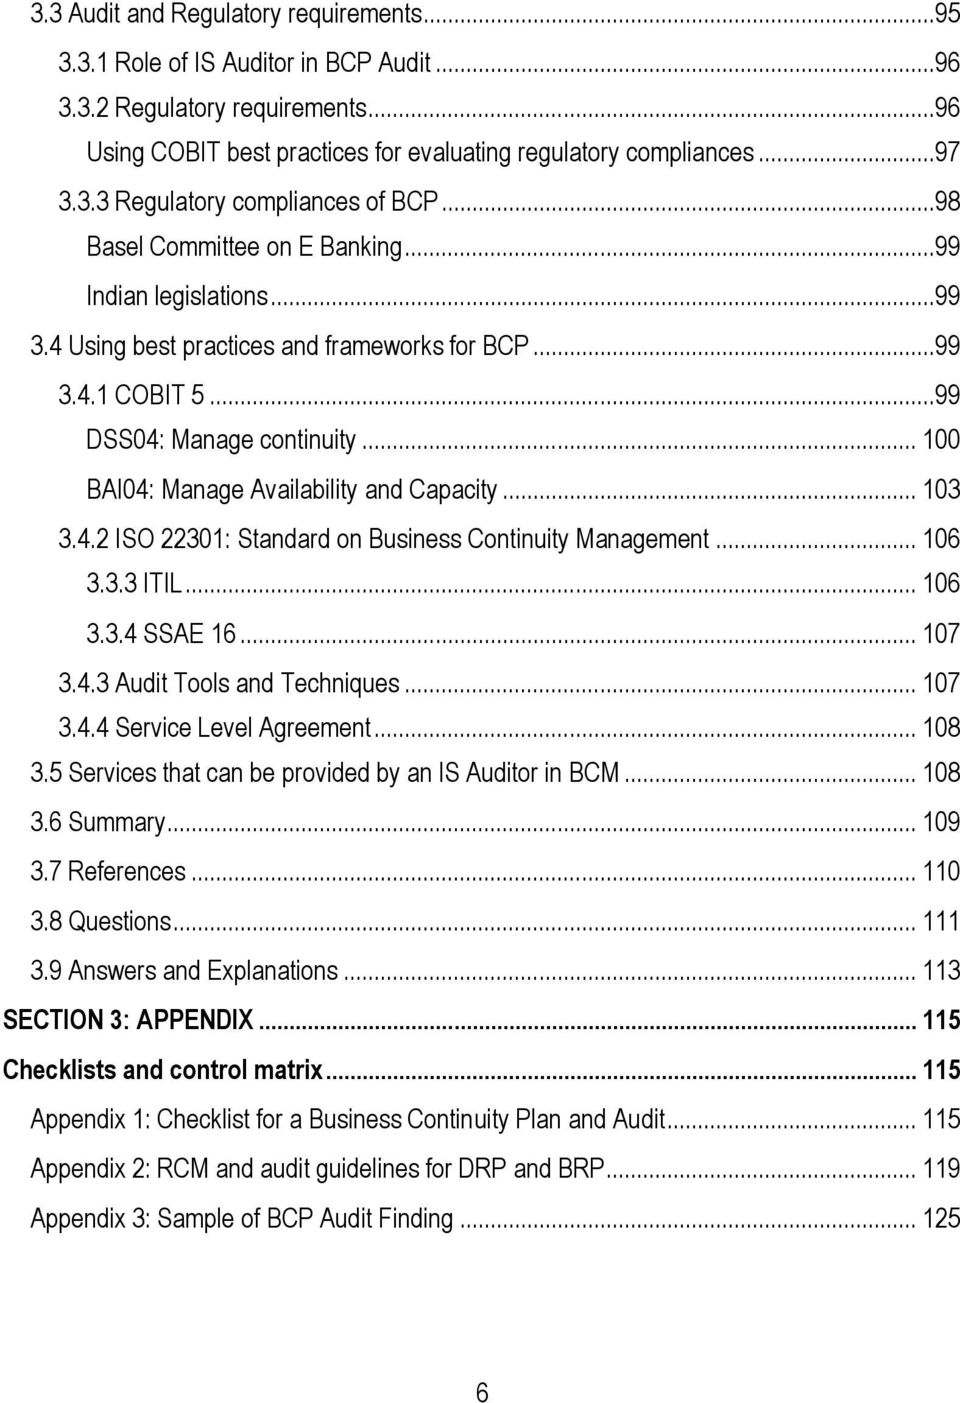 .. 100 BAI04: Manage Availability and Capacity... 103 3.4.2 ISO 22301: Standard on Business Continuity Management... 106 3.3.3 ITIL... 106 3.3.4 SSAE 16... 107 3.4.3 Audit Tools and Techniques... 107 3.4.4 Service Level Agreement.